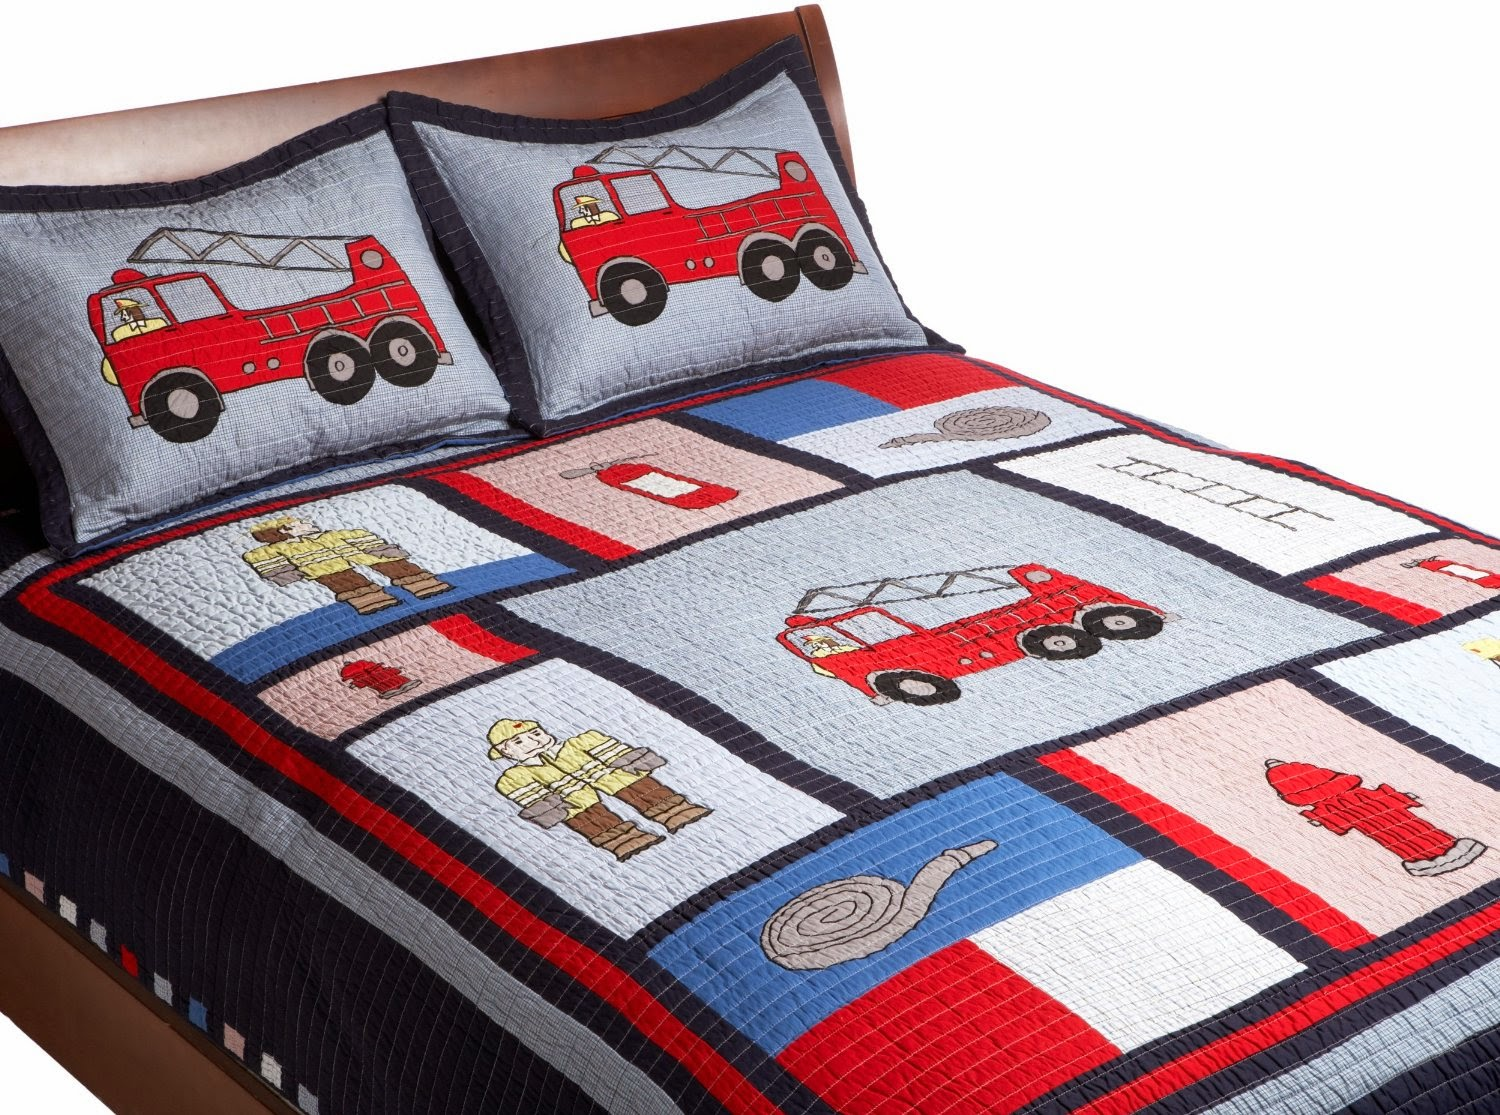 Bedroom Decor Ideas And Designs Fire Truck And Fireman Bedroom Decor Ideas